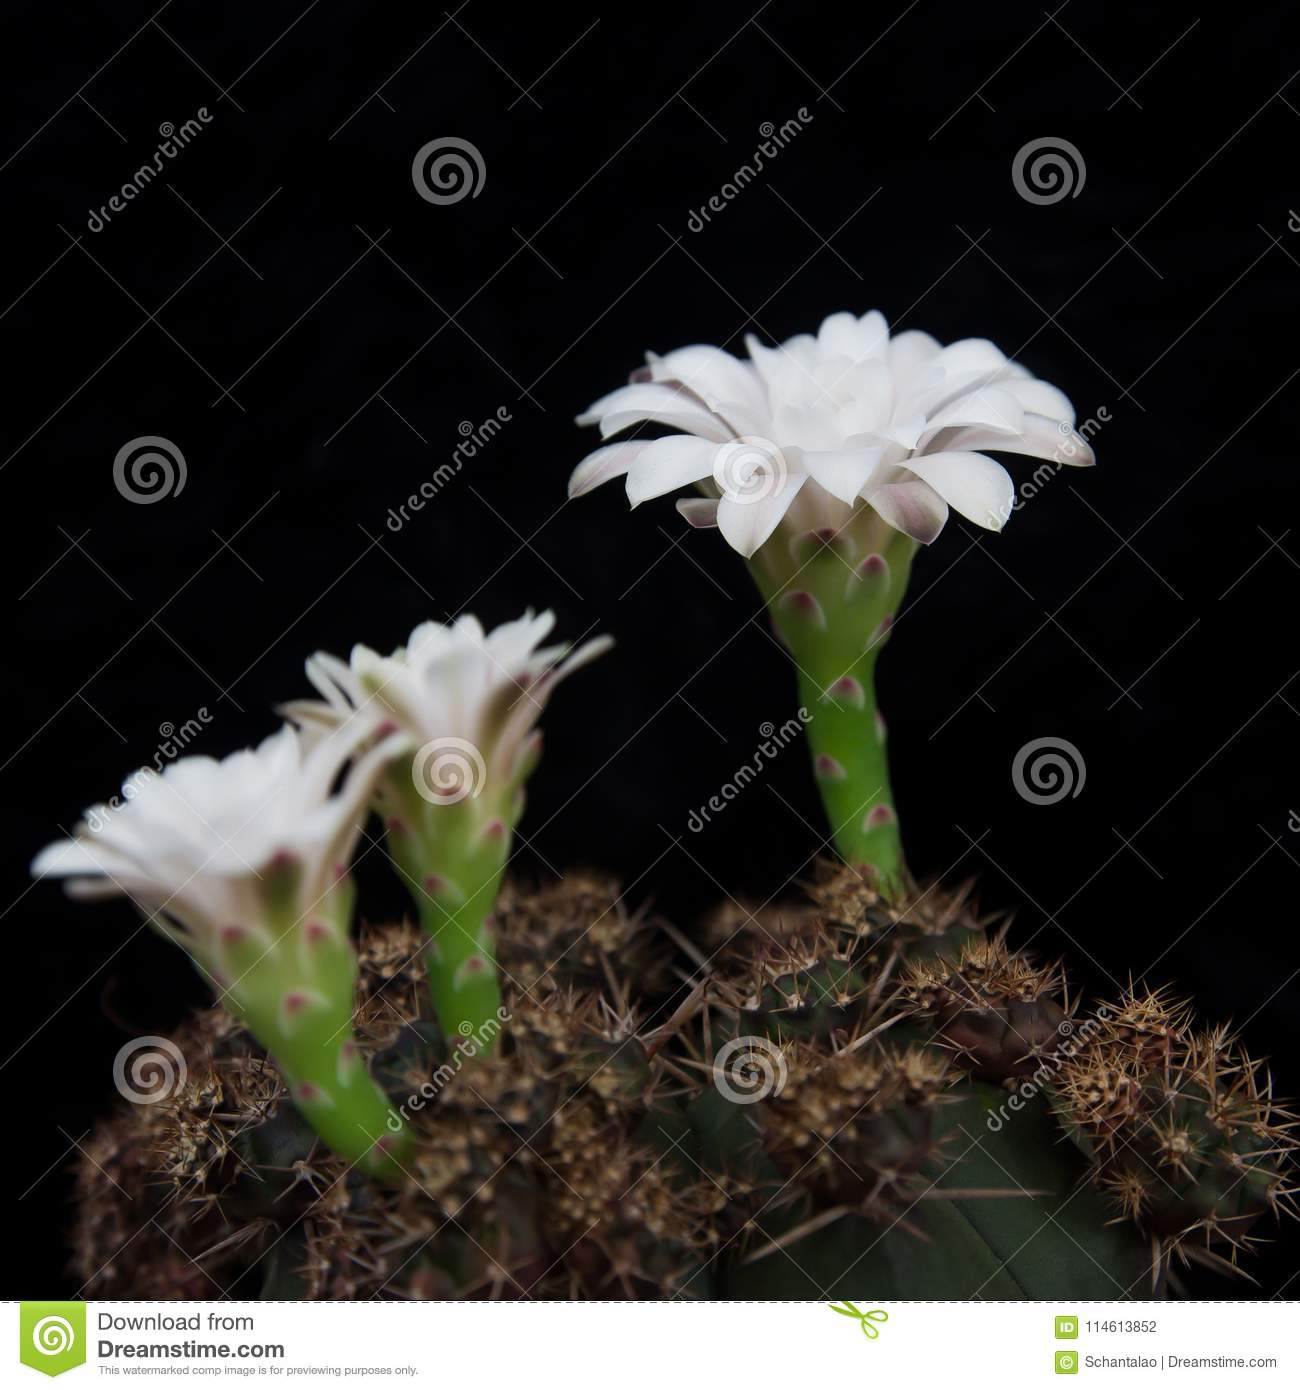 Cactus Plant With White Flowers On Black Background Stock Photo